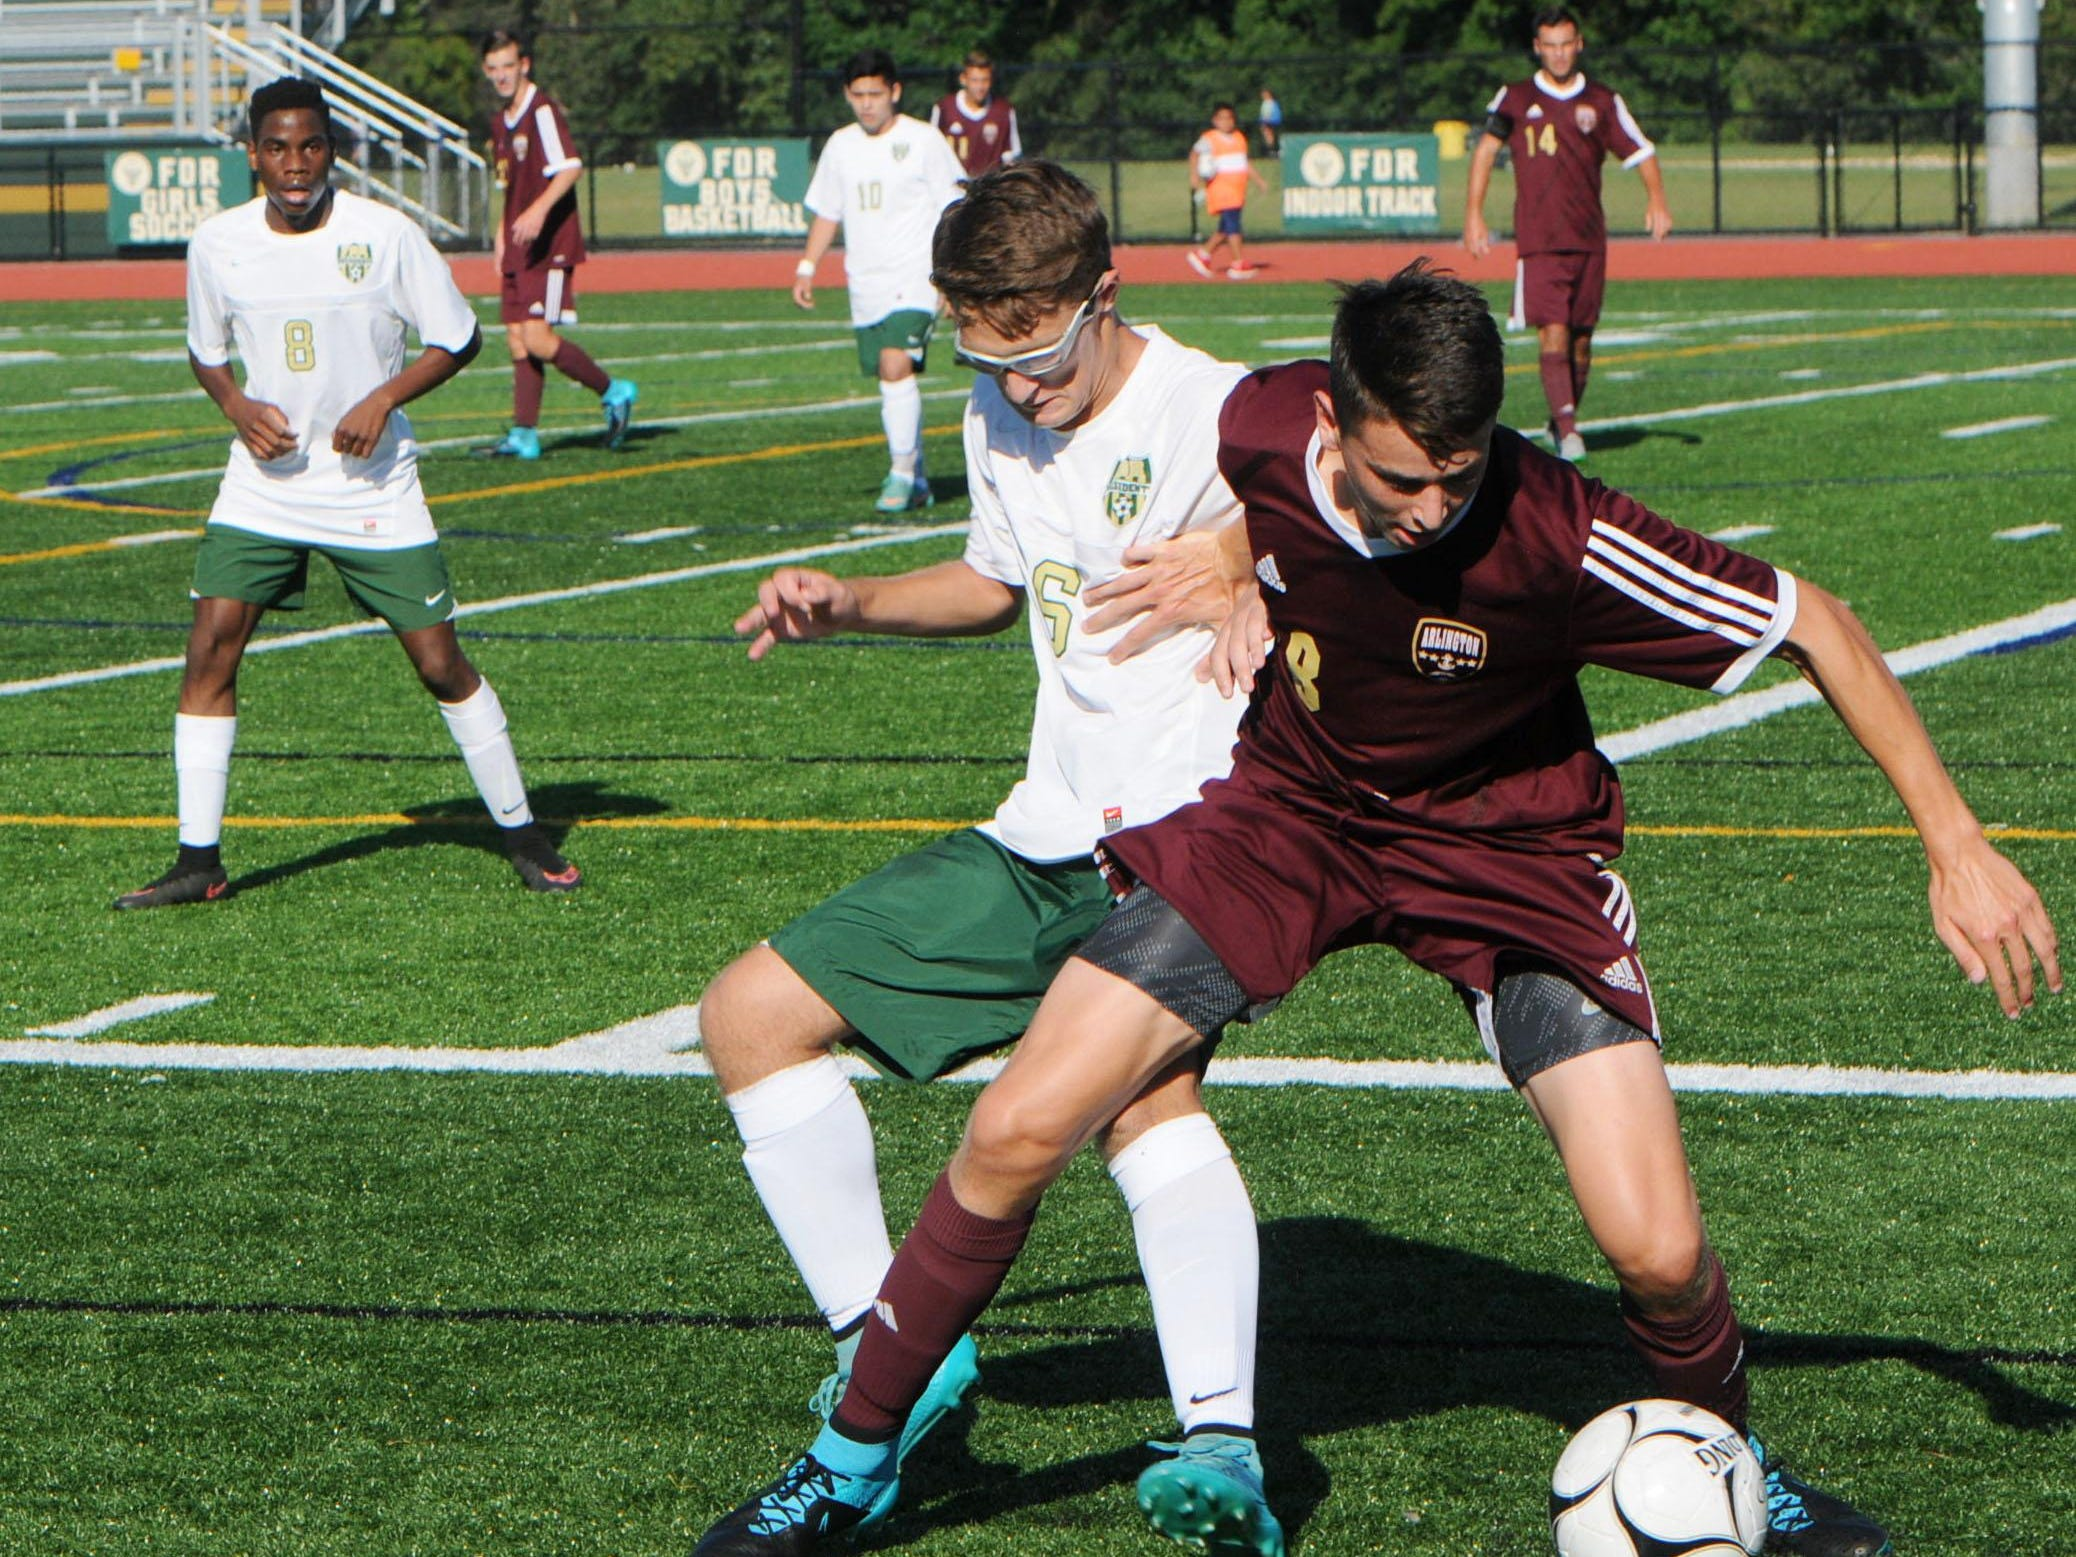 Arlington's Travis Cartica, right, tries to keep the ball away from FDR's T.J. Illuminate, left.